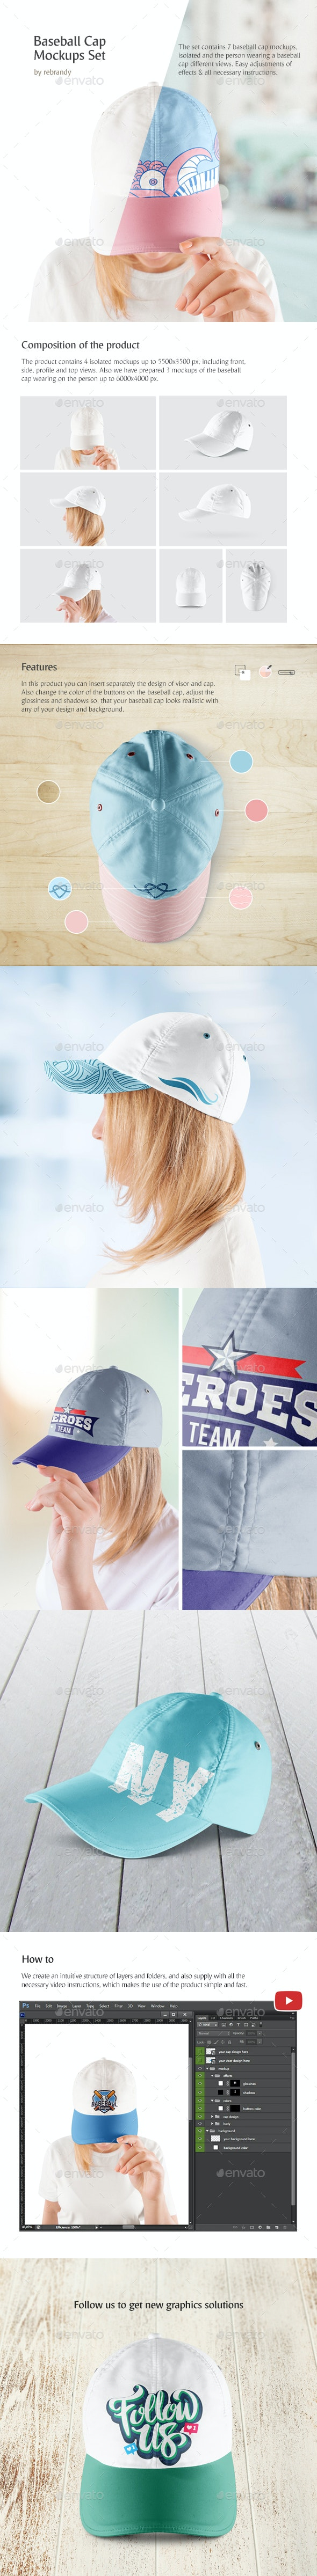 Baseball Cap Mockups Set - Product Mock-Ups Graphics